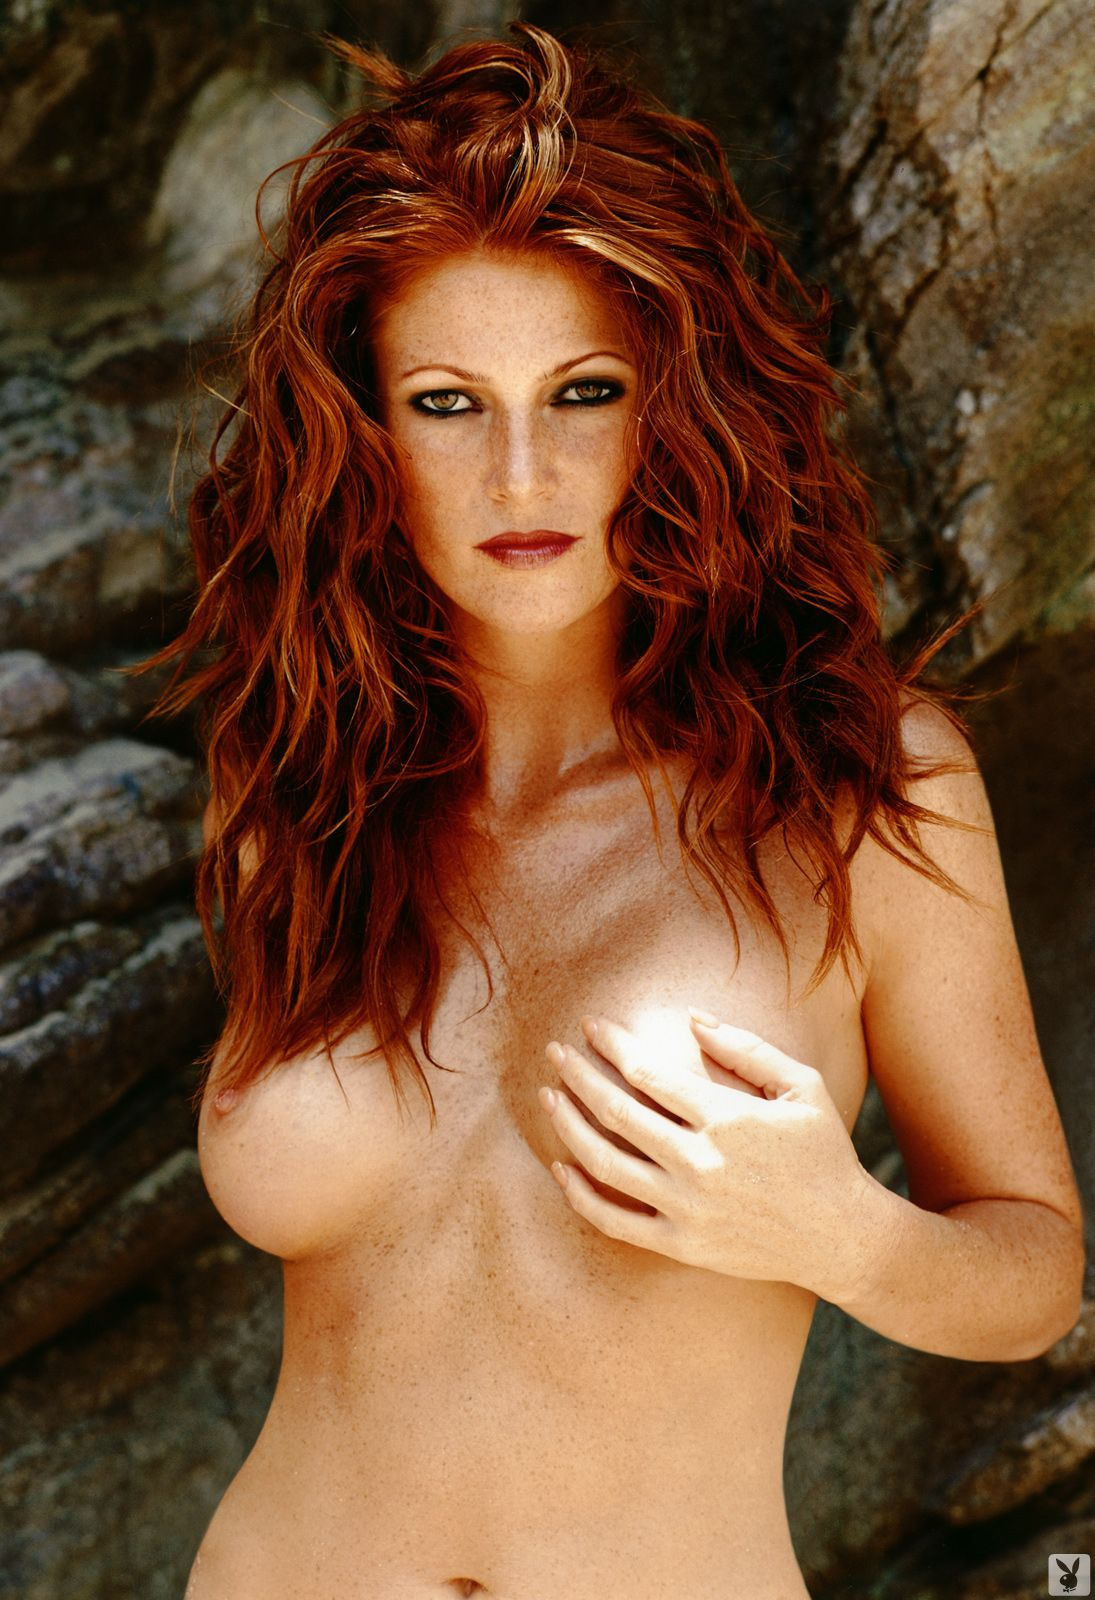 7 best angie everhart images on pinterest | angie everhart, ginger